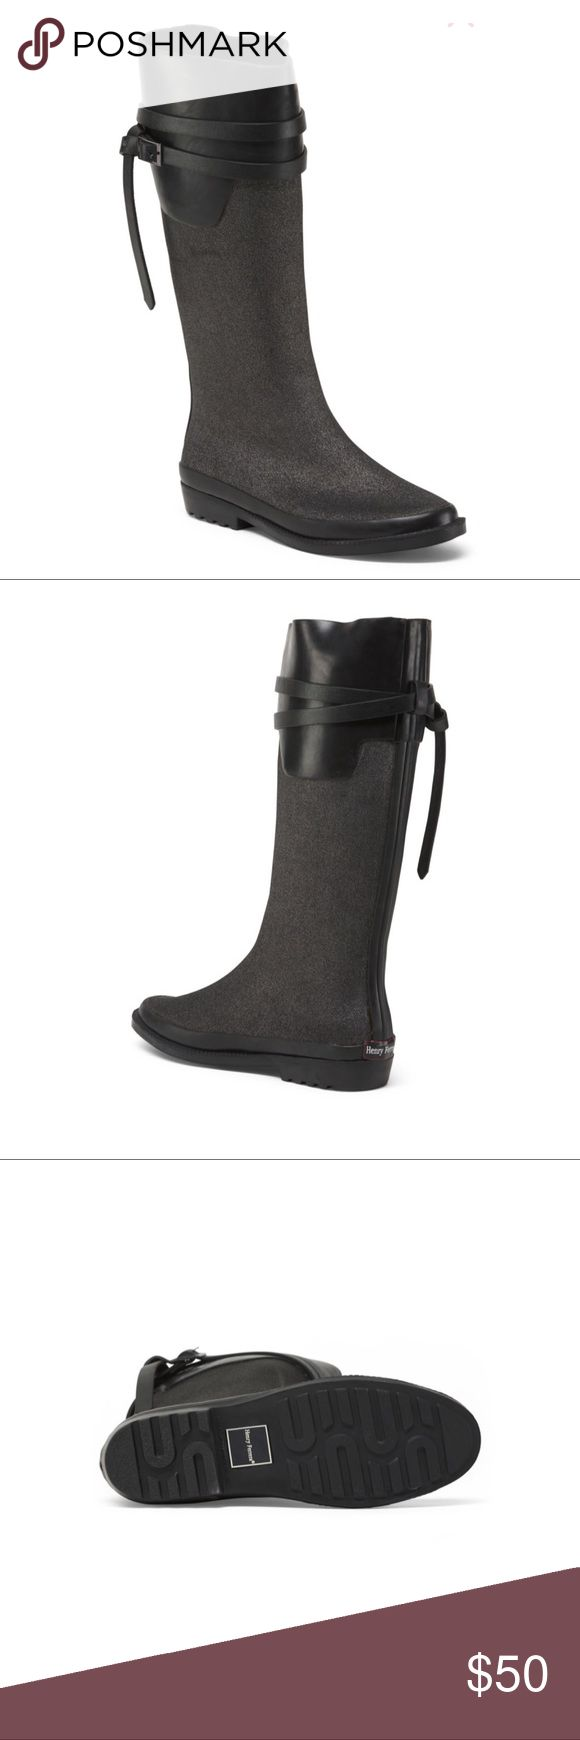 🎉HP🎉 NEW Henry Ferrera Rain Boots   Size 9 Brand New in box Henry Ferrera Rain boots Size: 9  Color: Pewter with black straps Style: Ambiance 100 Water resistant with buckle and strap detail Pull on boots Shaft height is about 15 inches and shaft circumference is about 14.74 inches. 1 inch heel Great as a gift! Questions? Please ask prior to purchasing Henry Ferrera Shoes Winter & Rain Boots